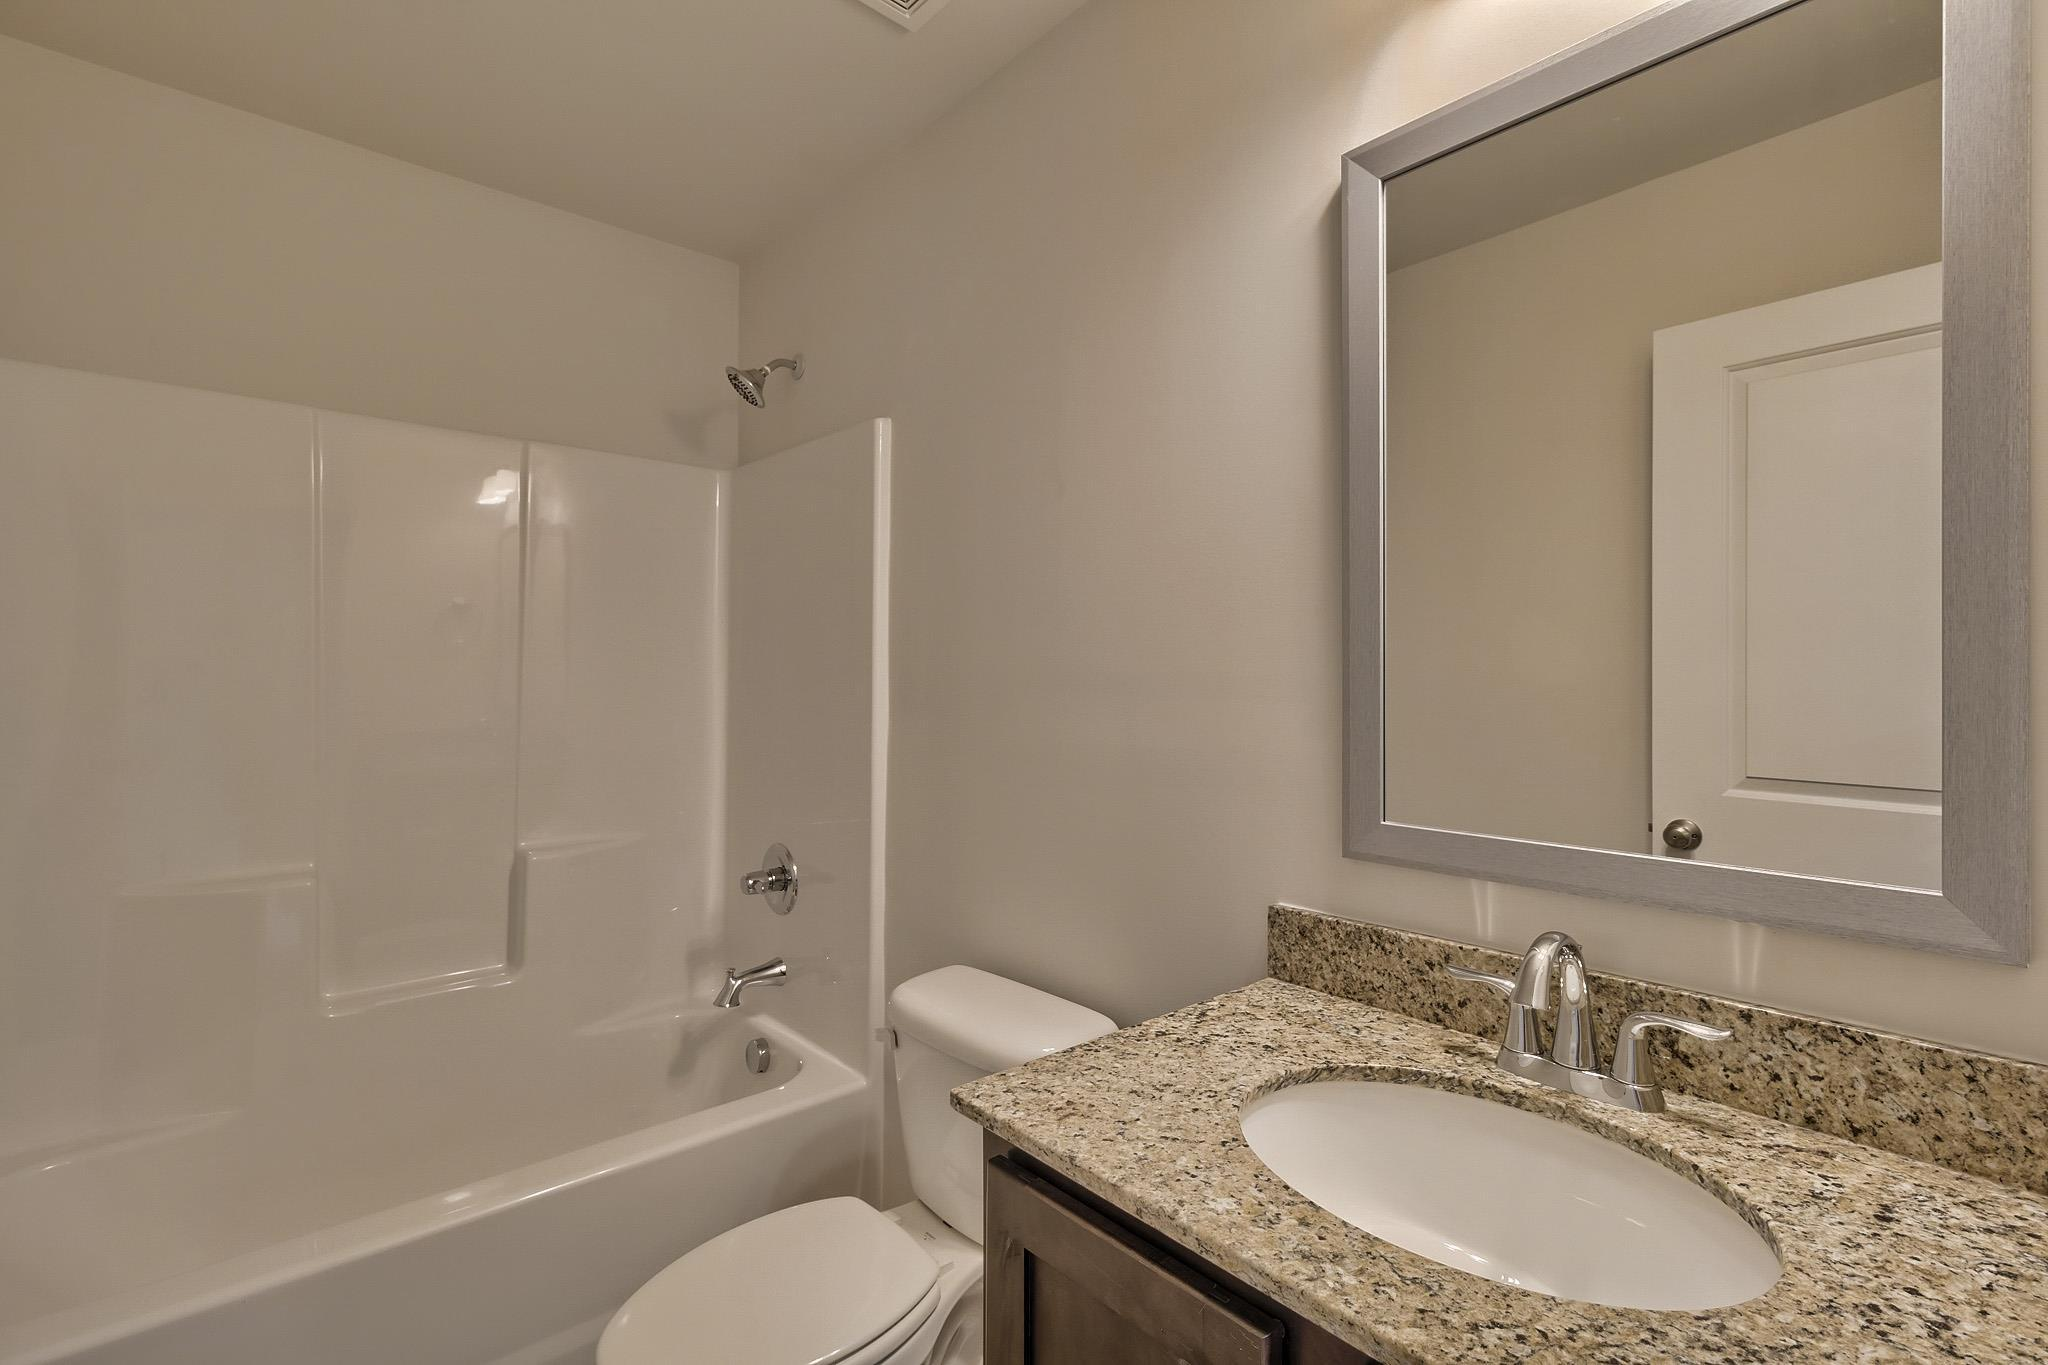 Bathroom featured in the Magnolia By McGuinn Hybrid Homes in Columbia, SC